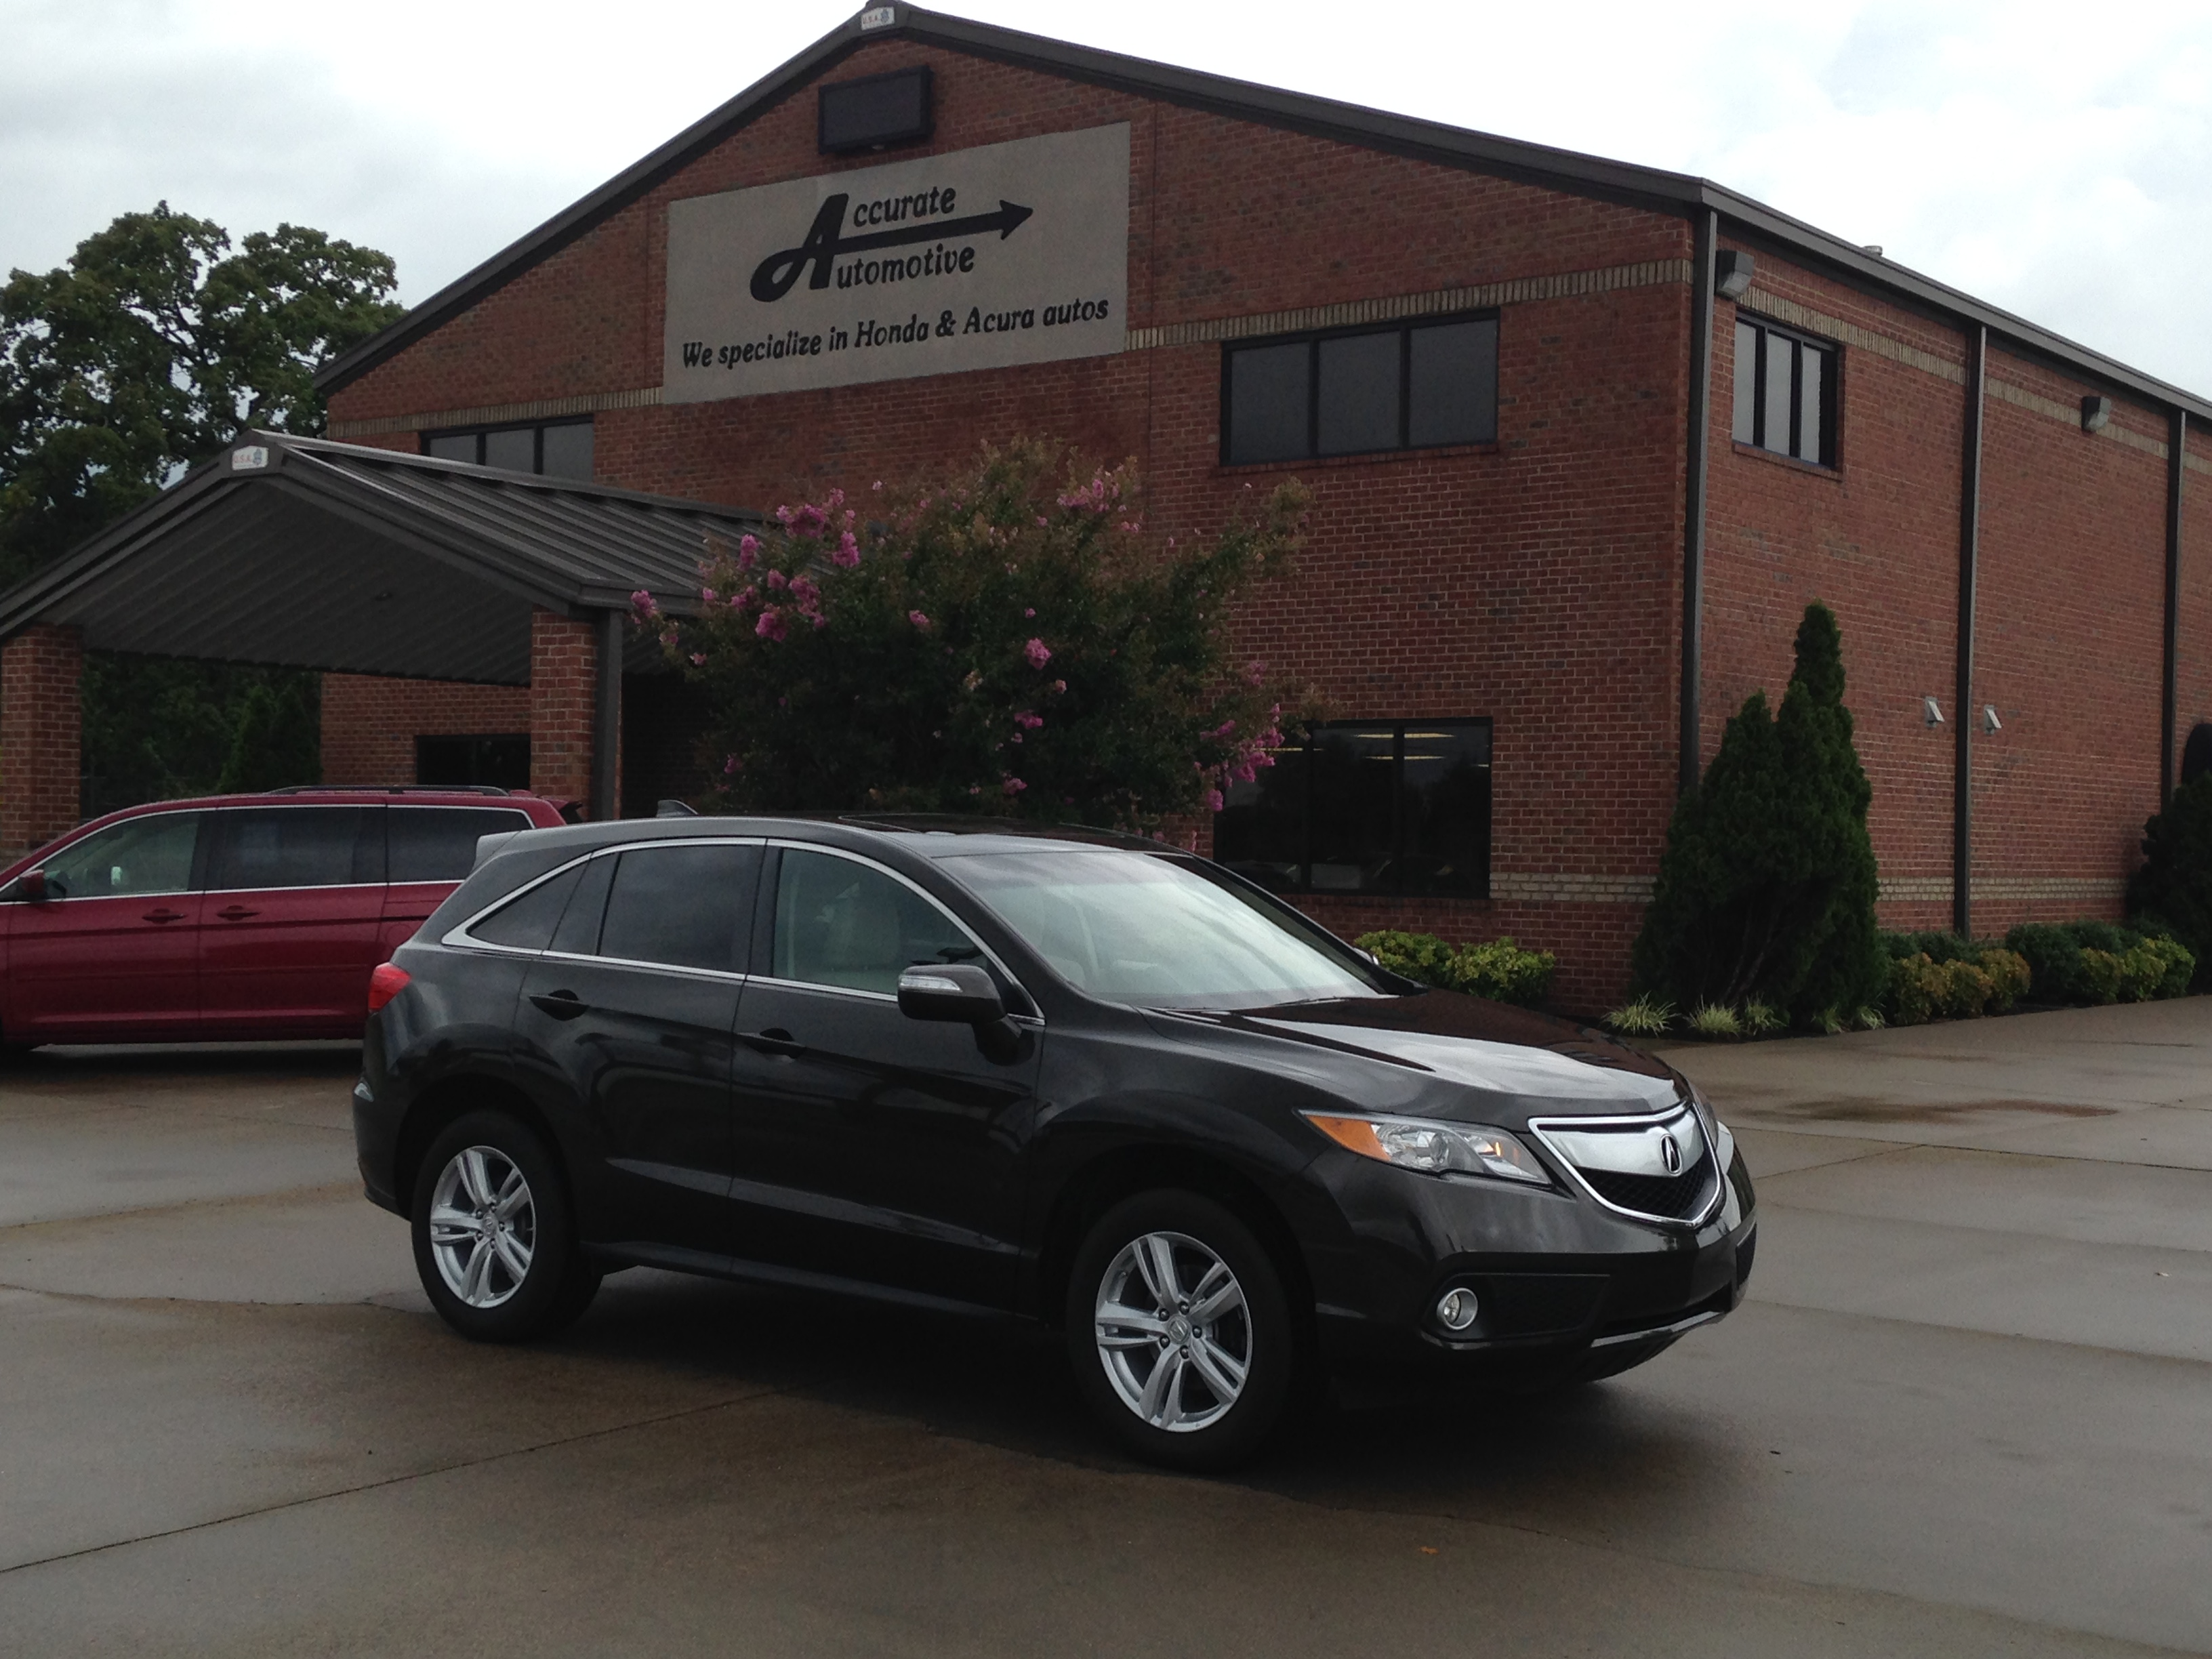 md gallery features bethesda ilx interior incentives new acura price xl lease